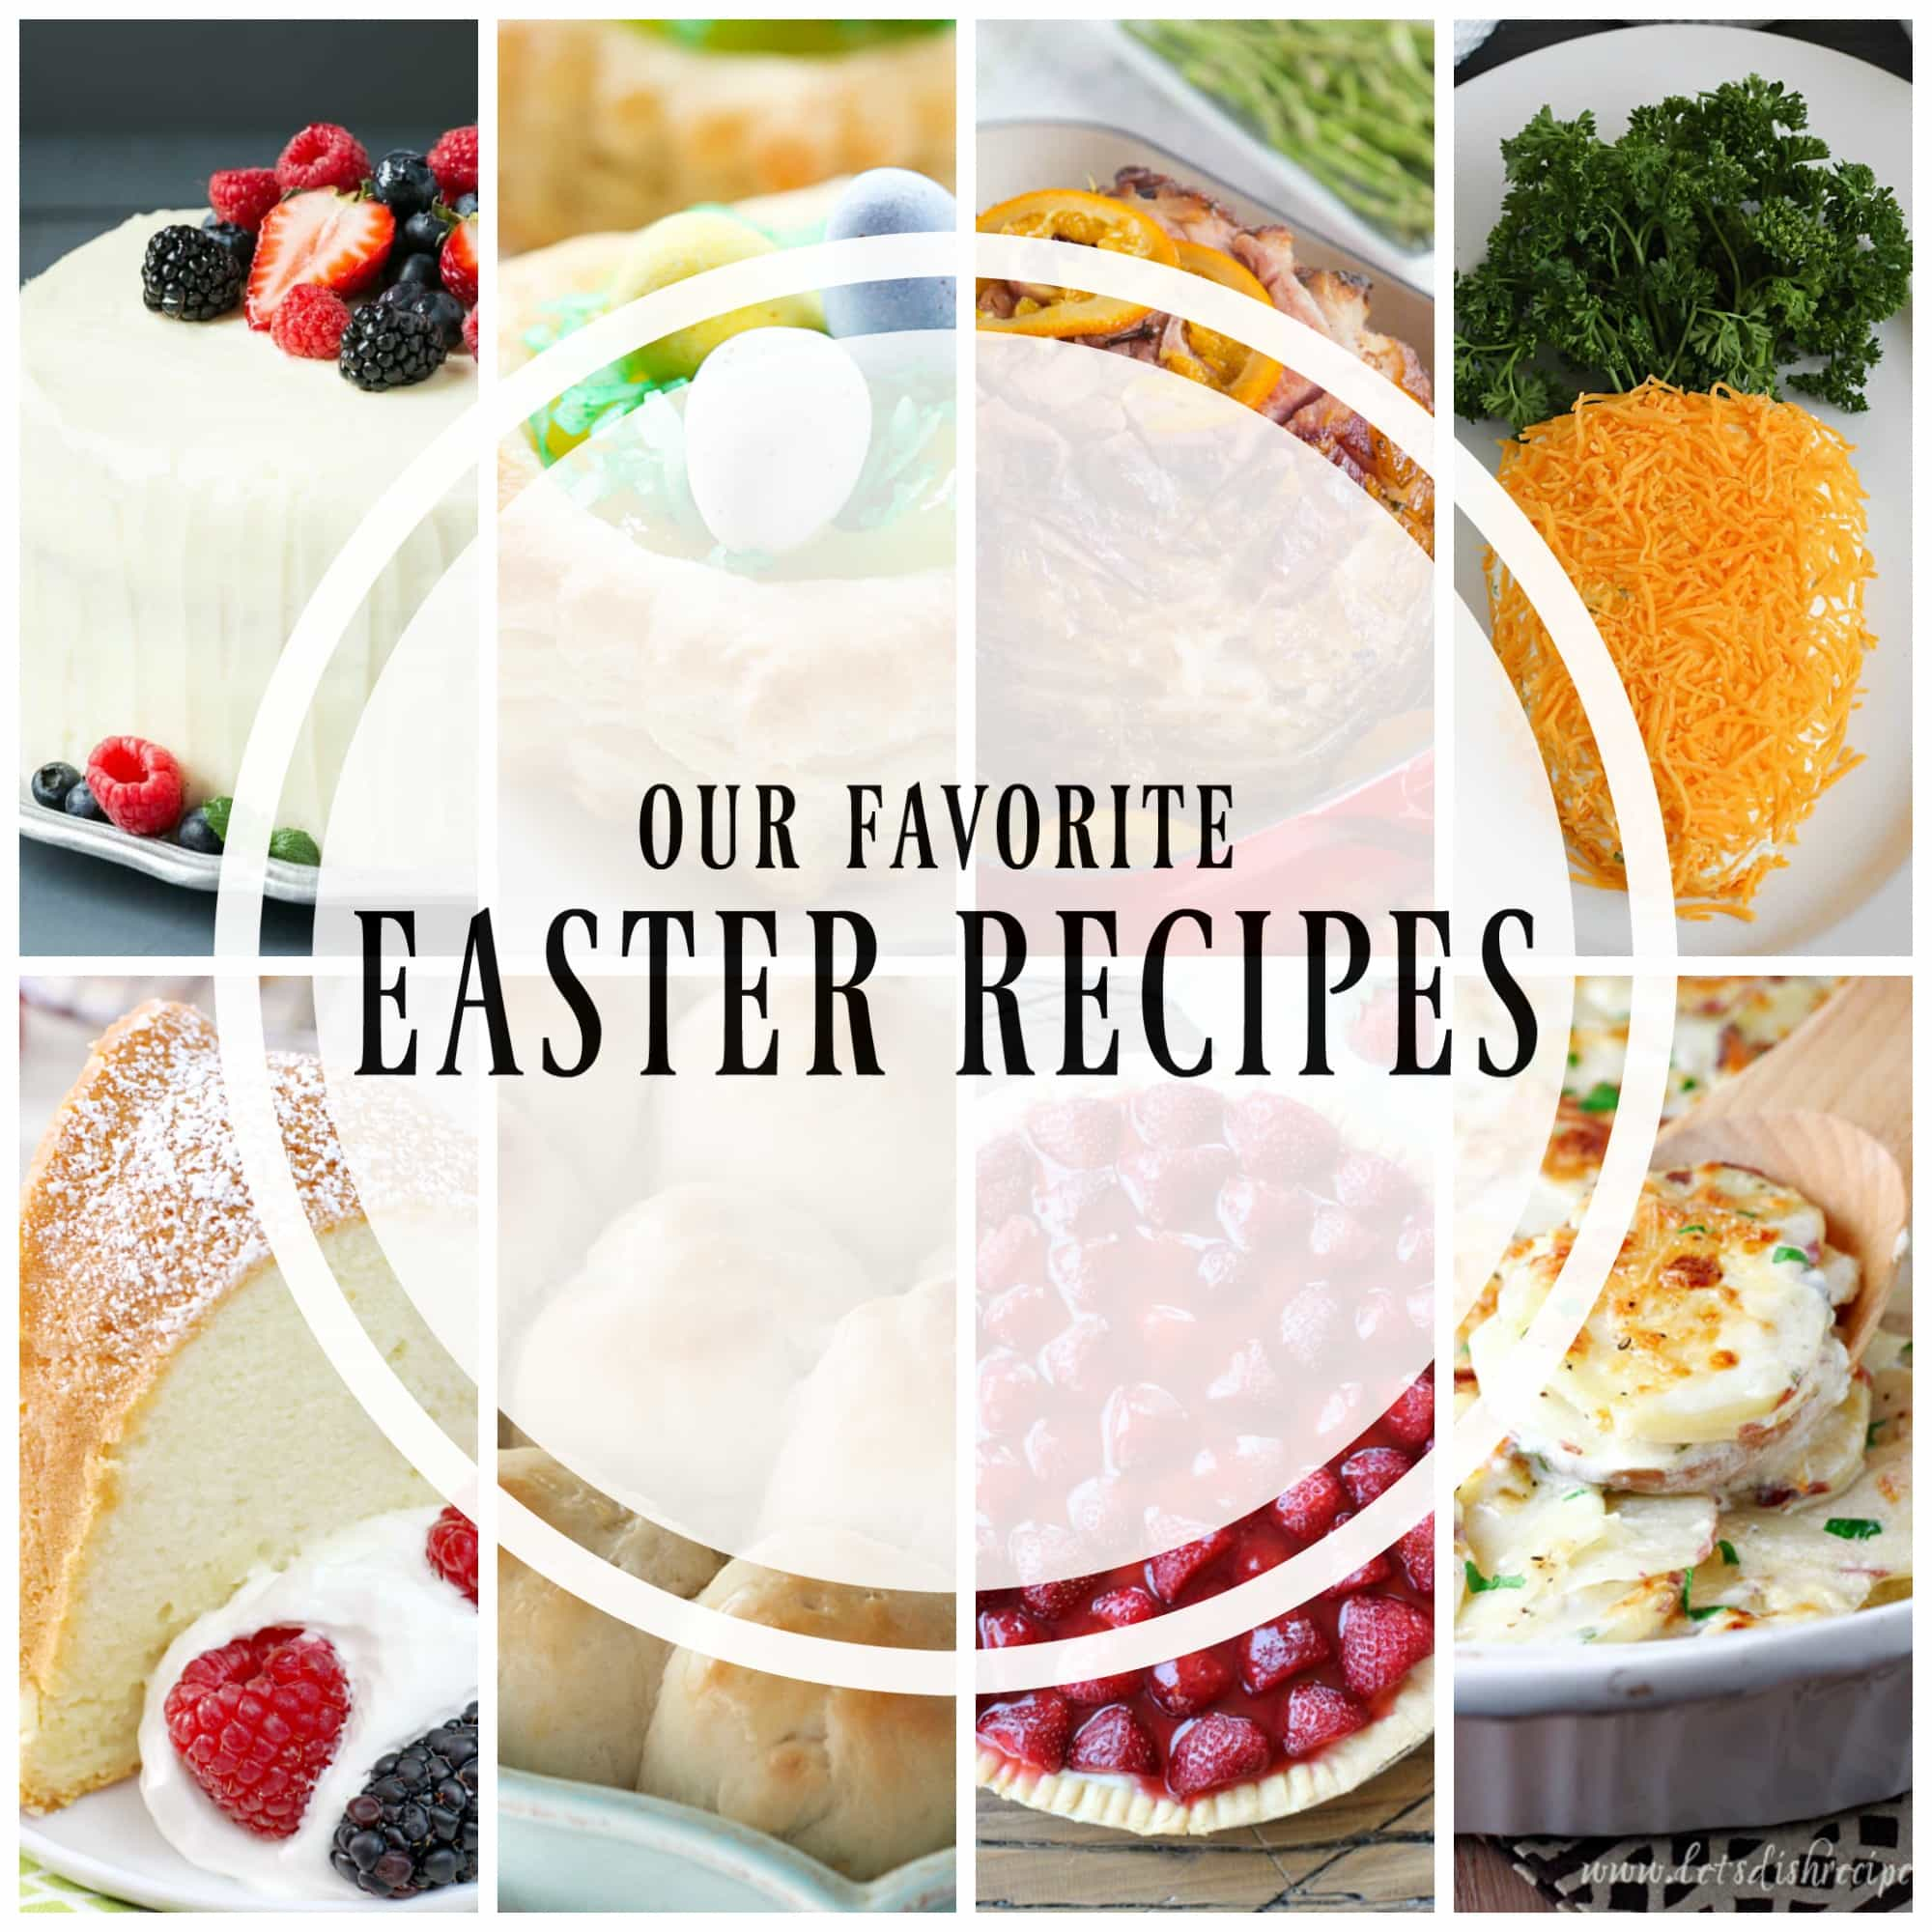 Our Favorite Easter Recipes! Each one is going to make your holiday meal special!